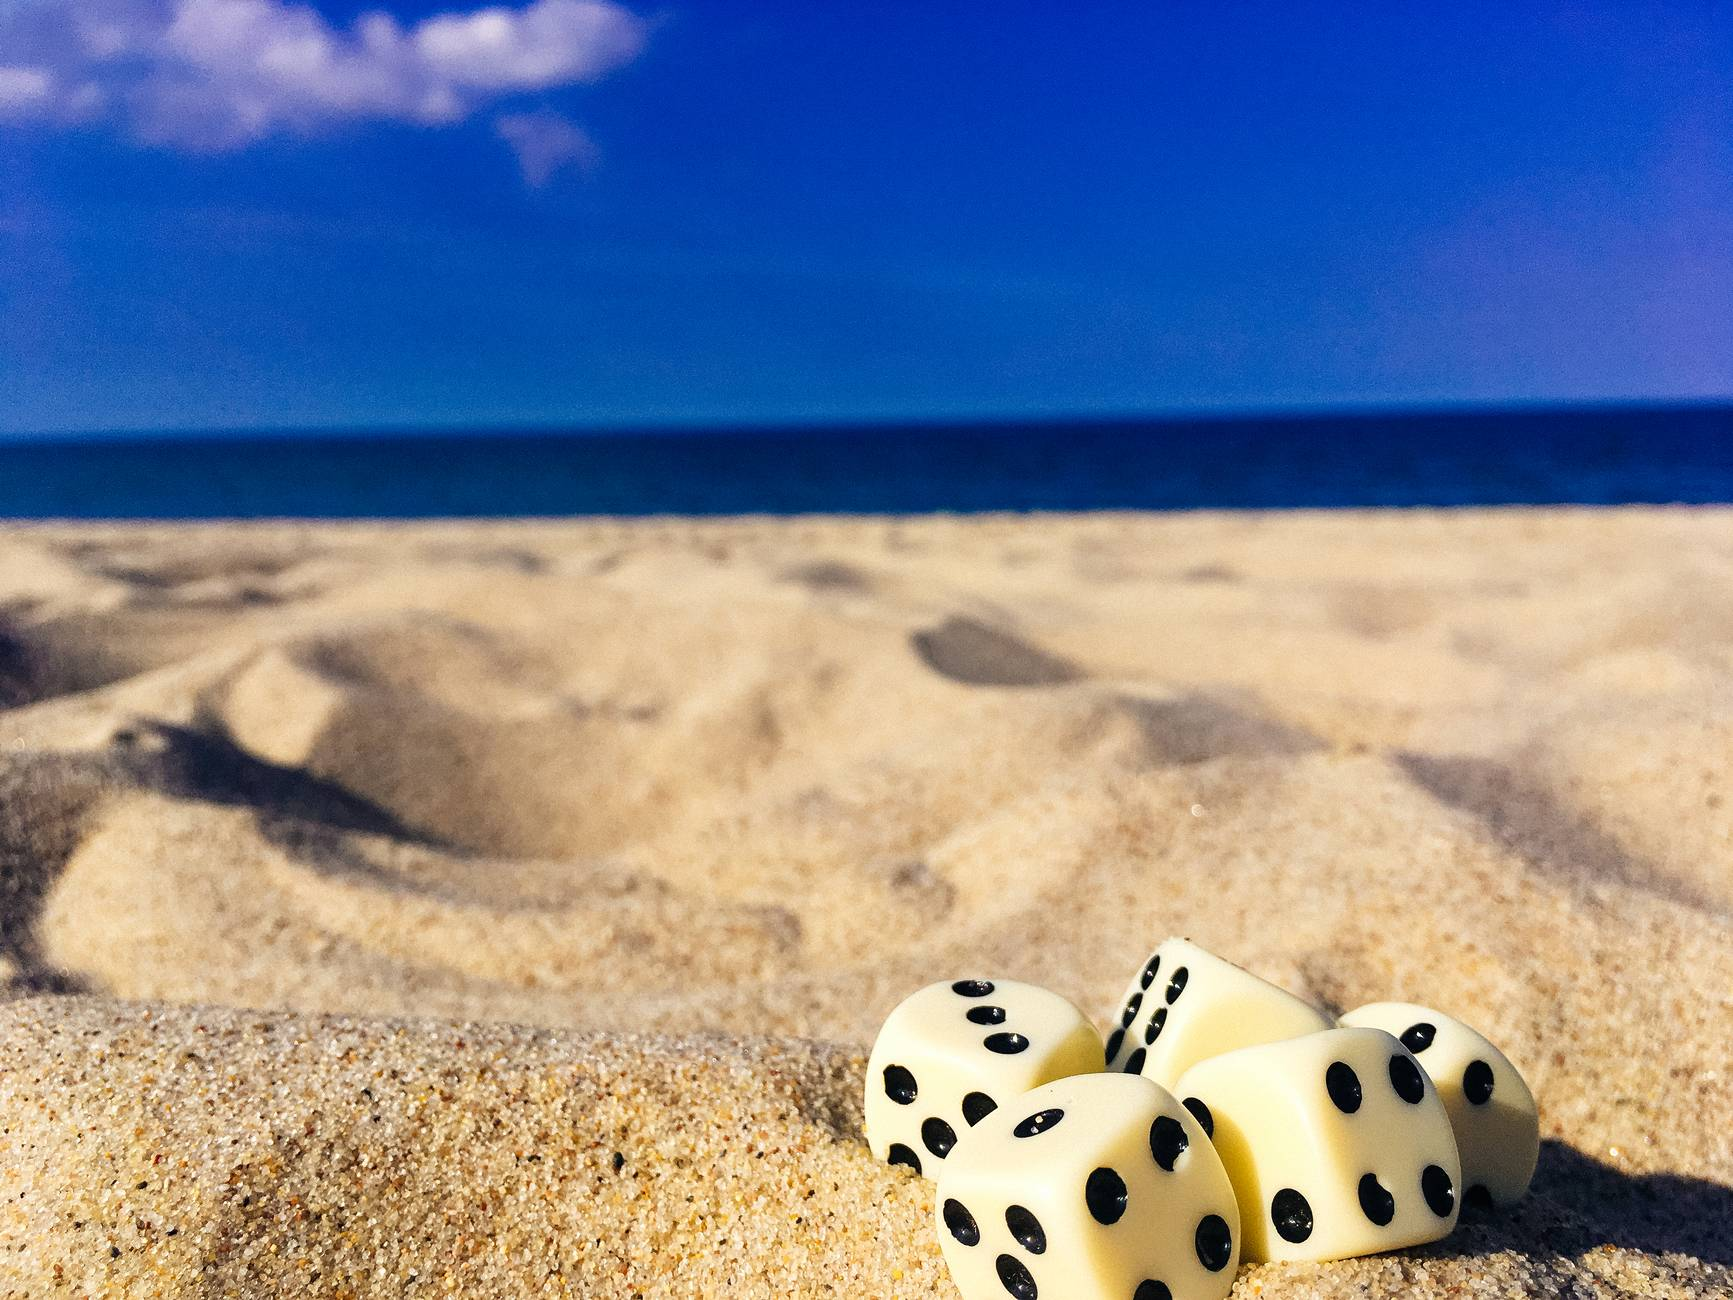 five dice on sand